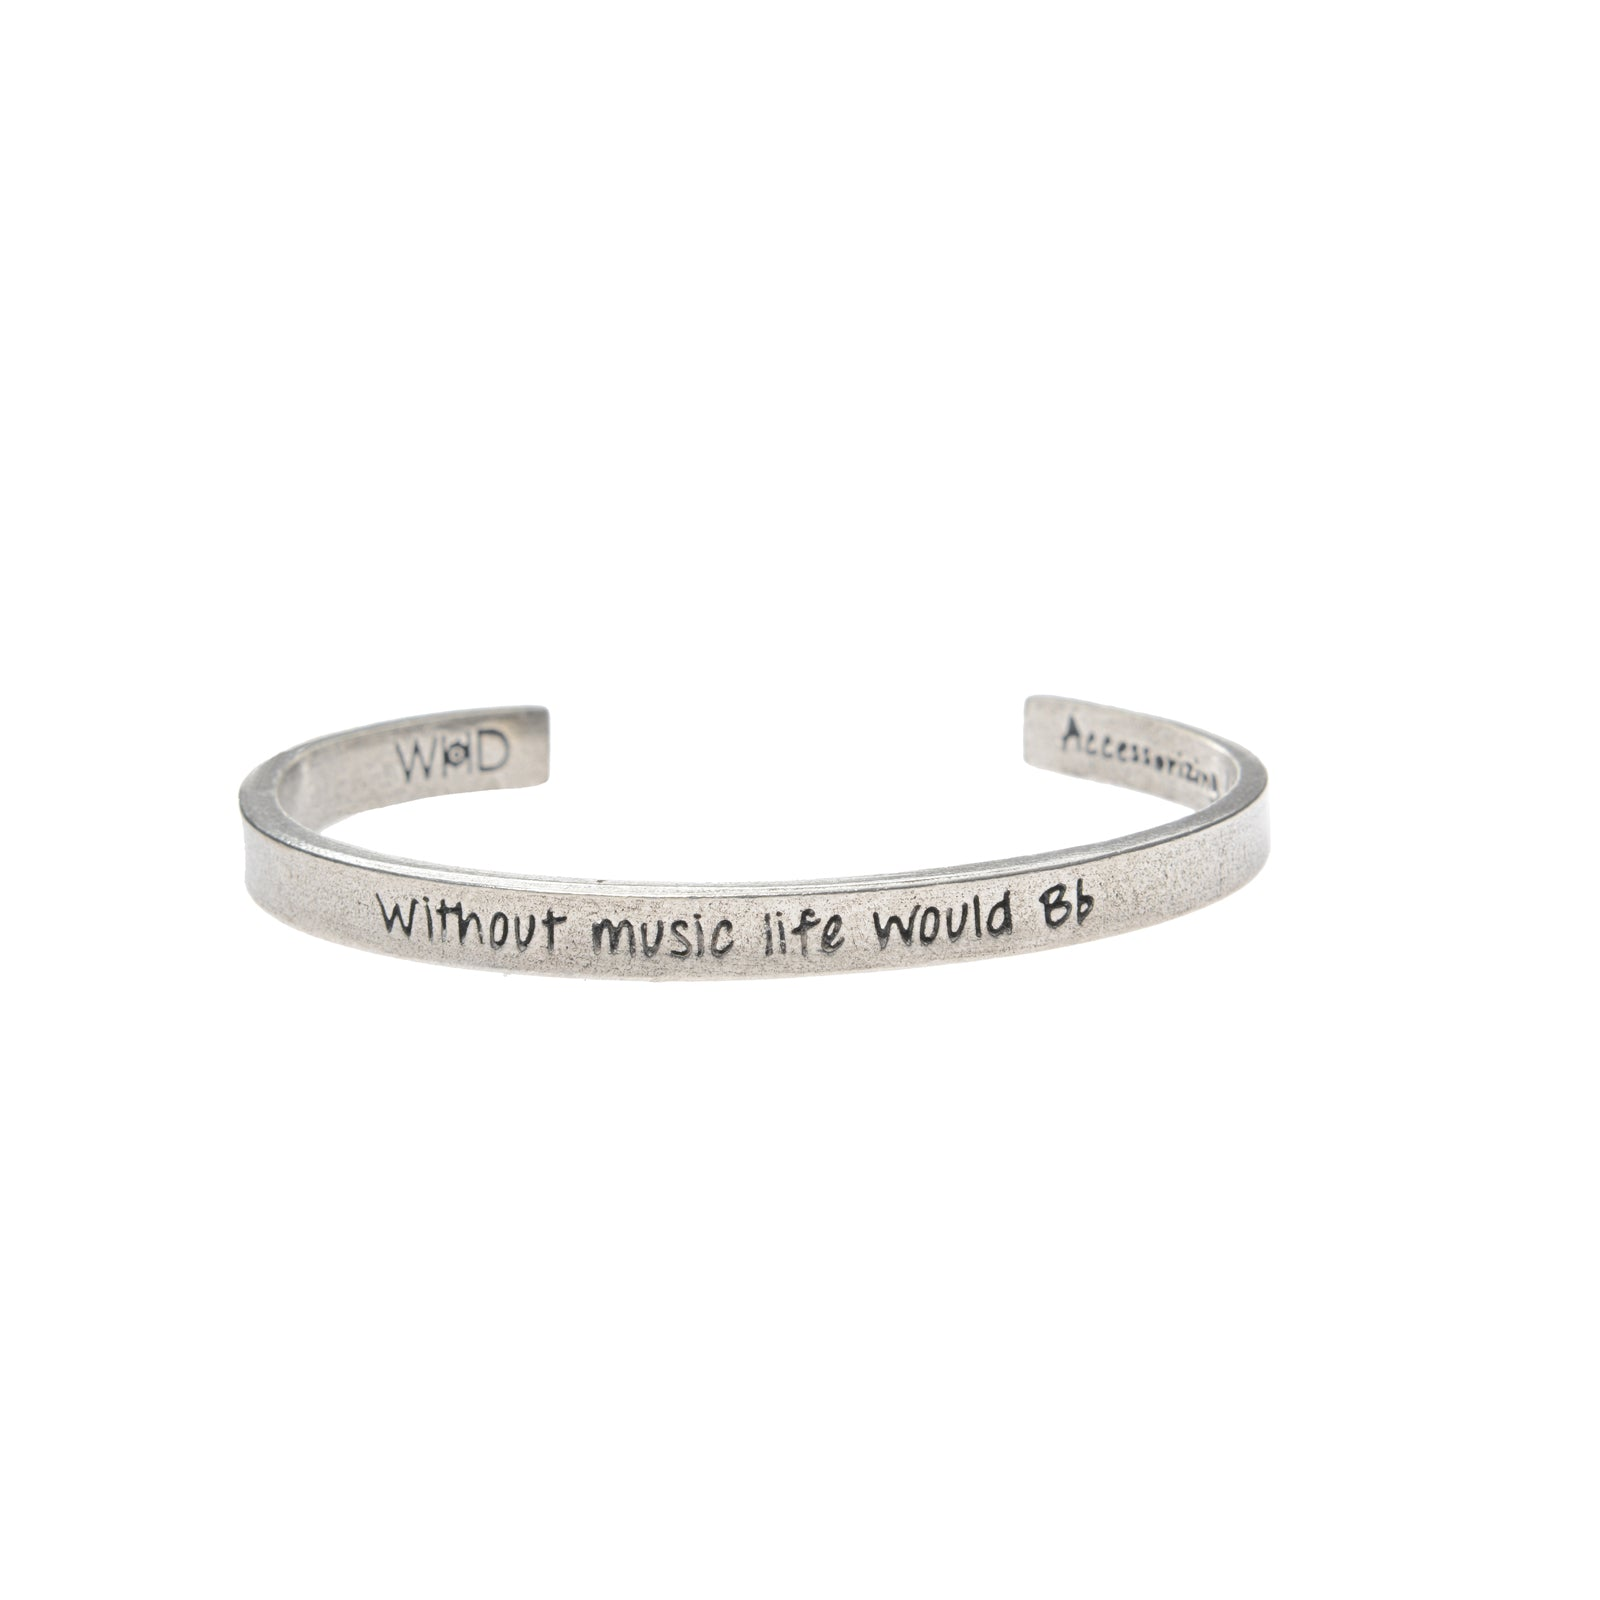 Without Music Life Quotable Cuff - Whitney Howard Designs